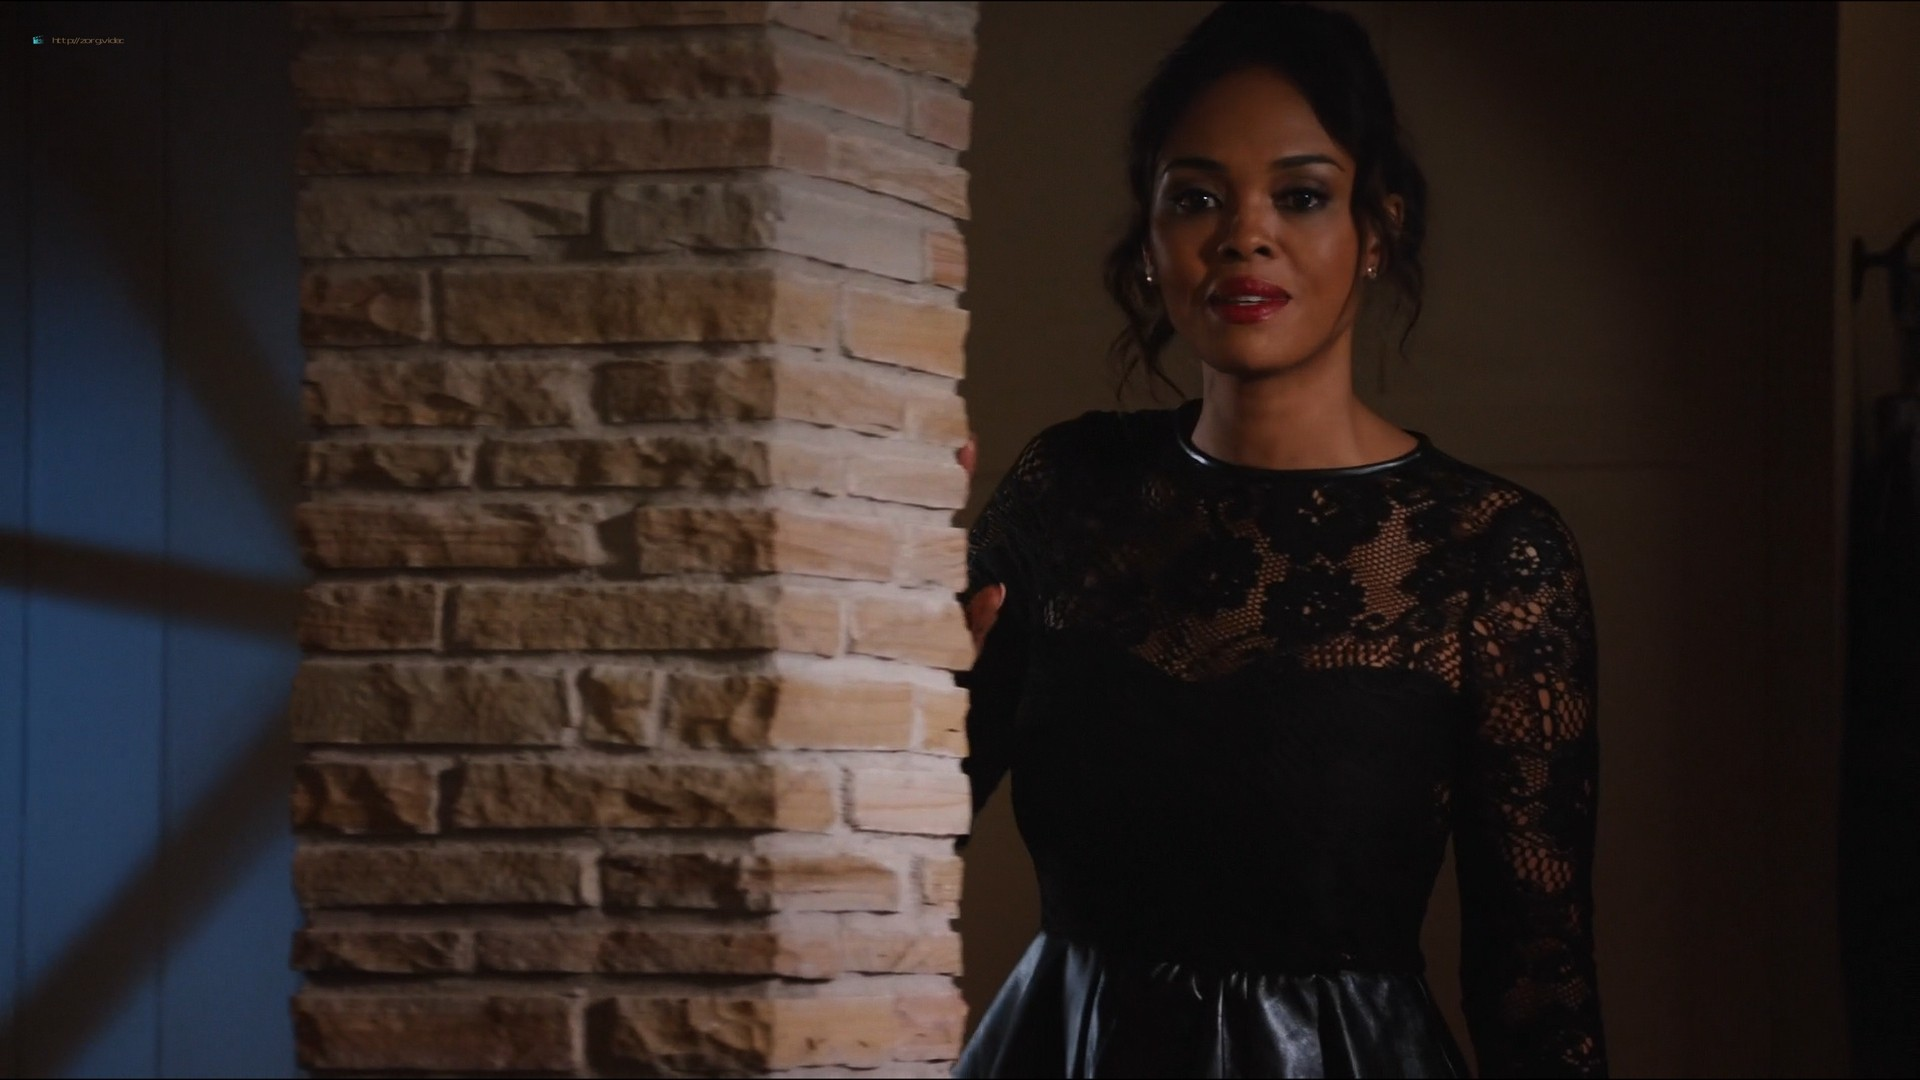 Sharon Leal nude and lot of sex others nude too - Addicted (2014) HD 1080p (16)